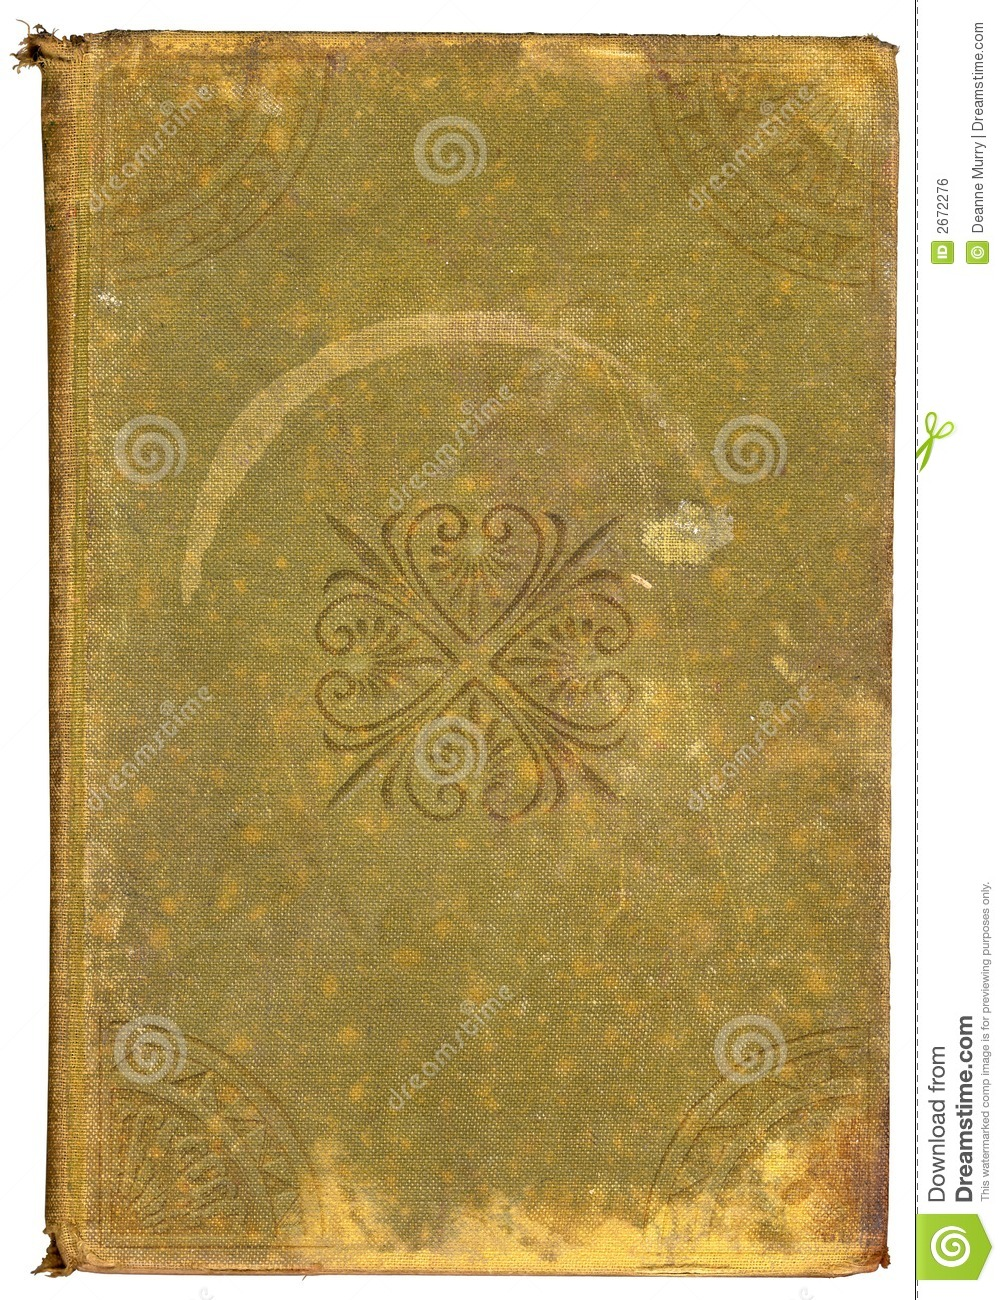 Book Cover Illustration Royalties : Vintage book cover royalty free stock image